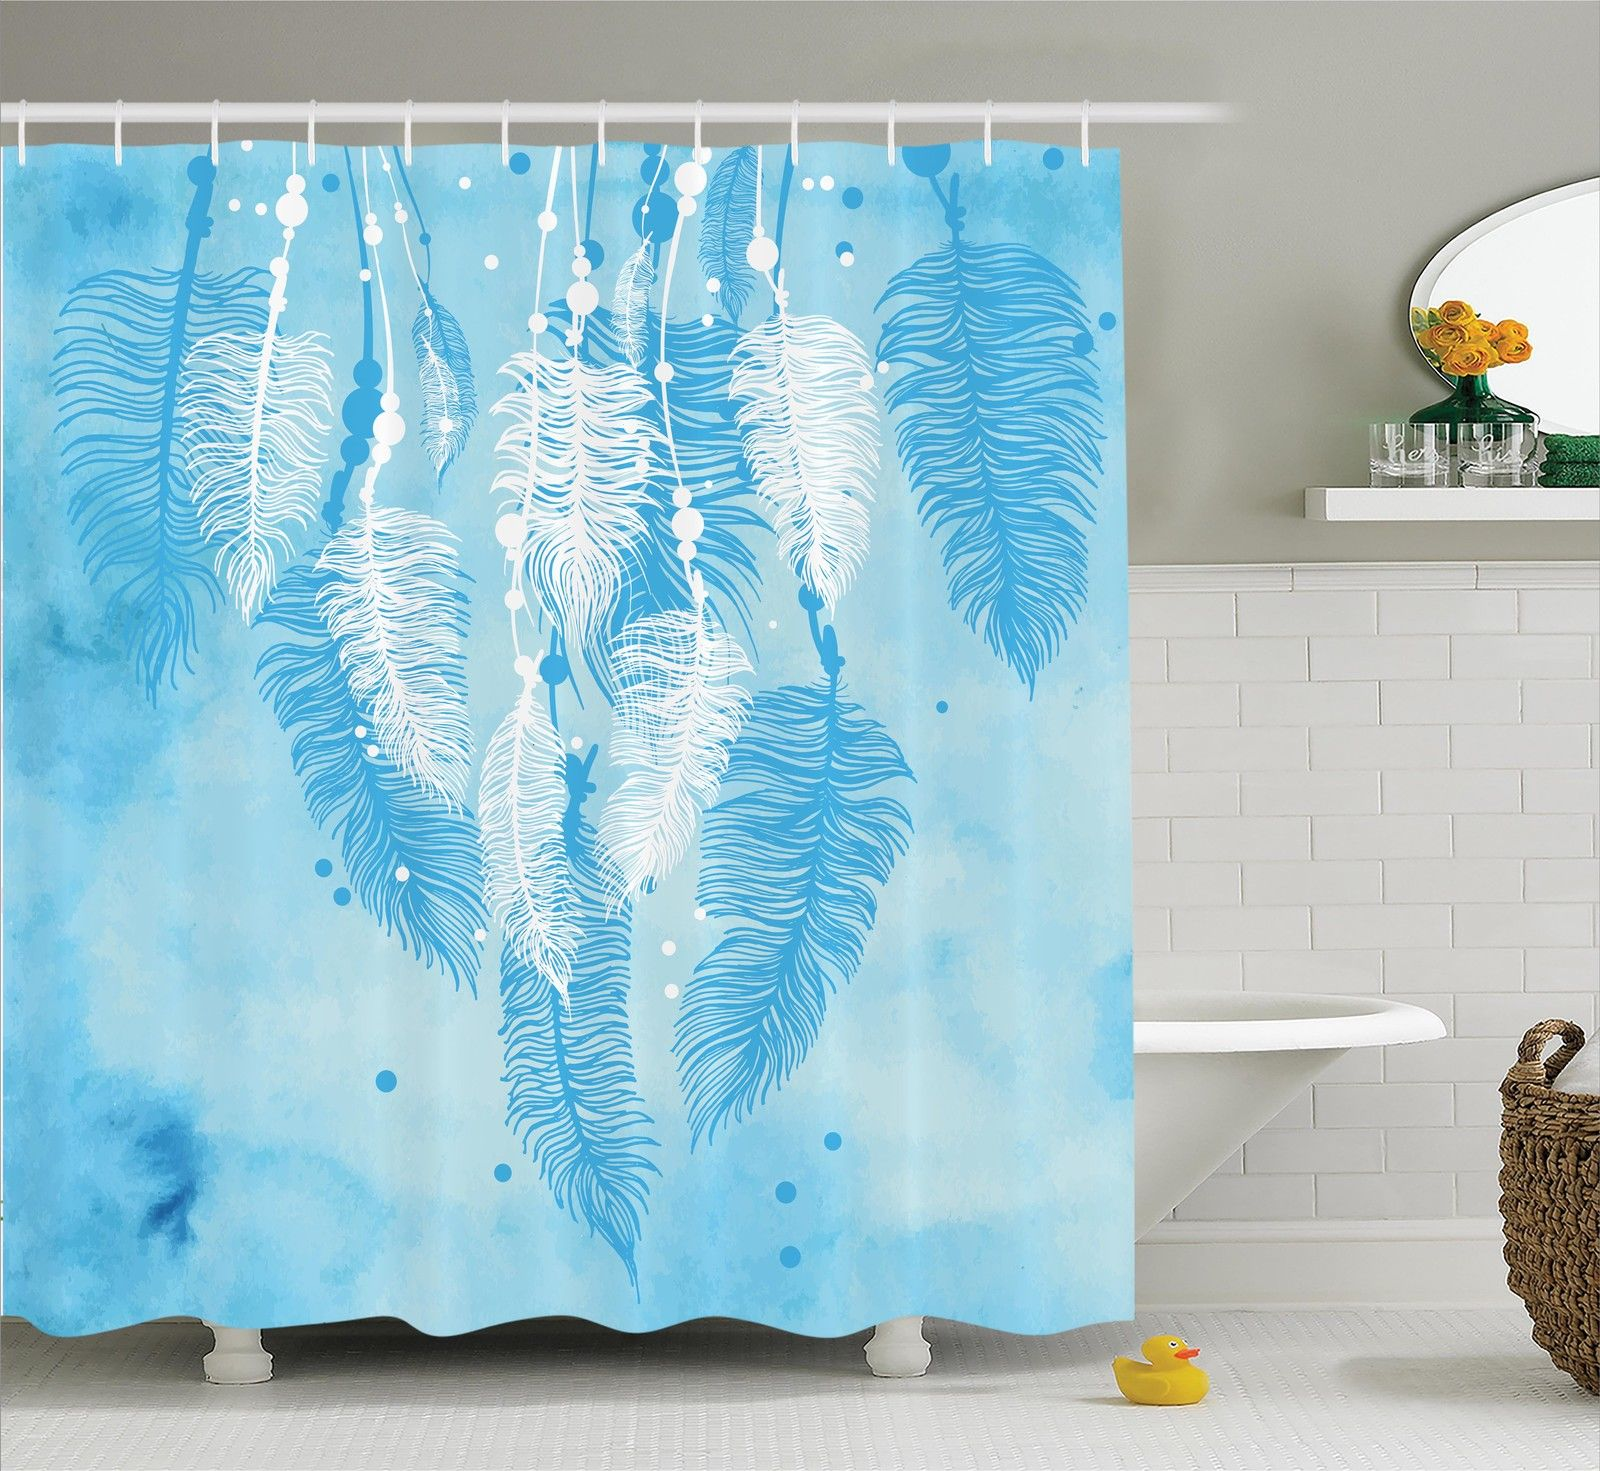 Apartment Decor  Watercolors Style Digital Made Feather H...